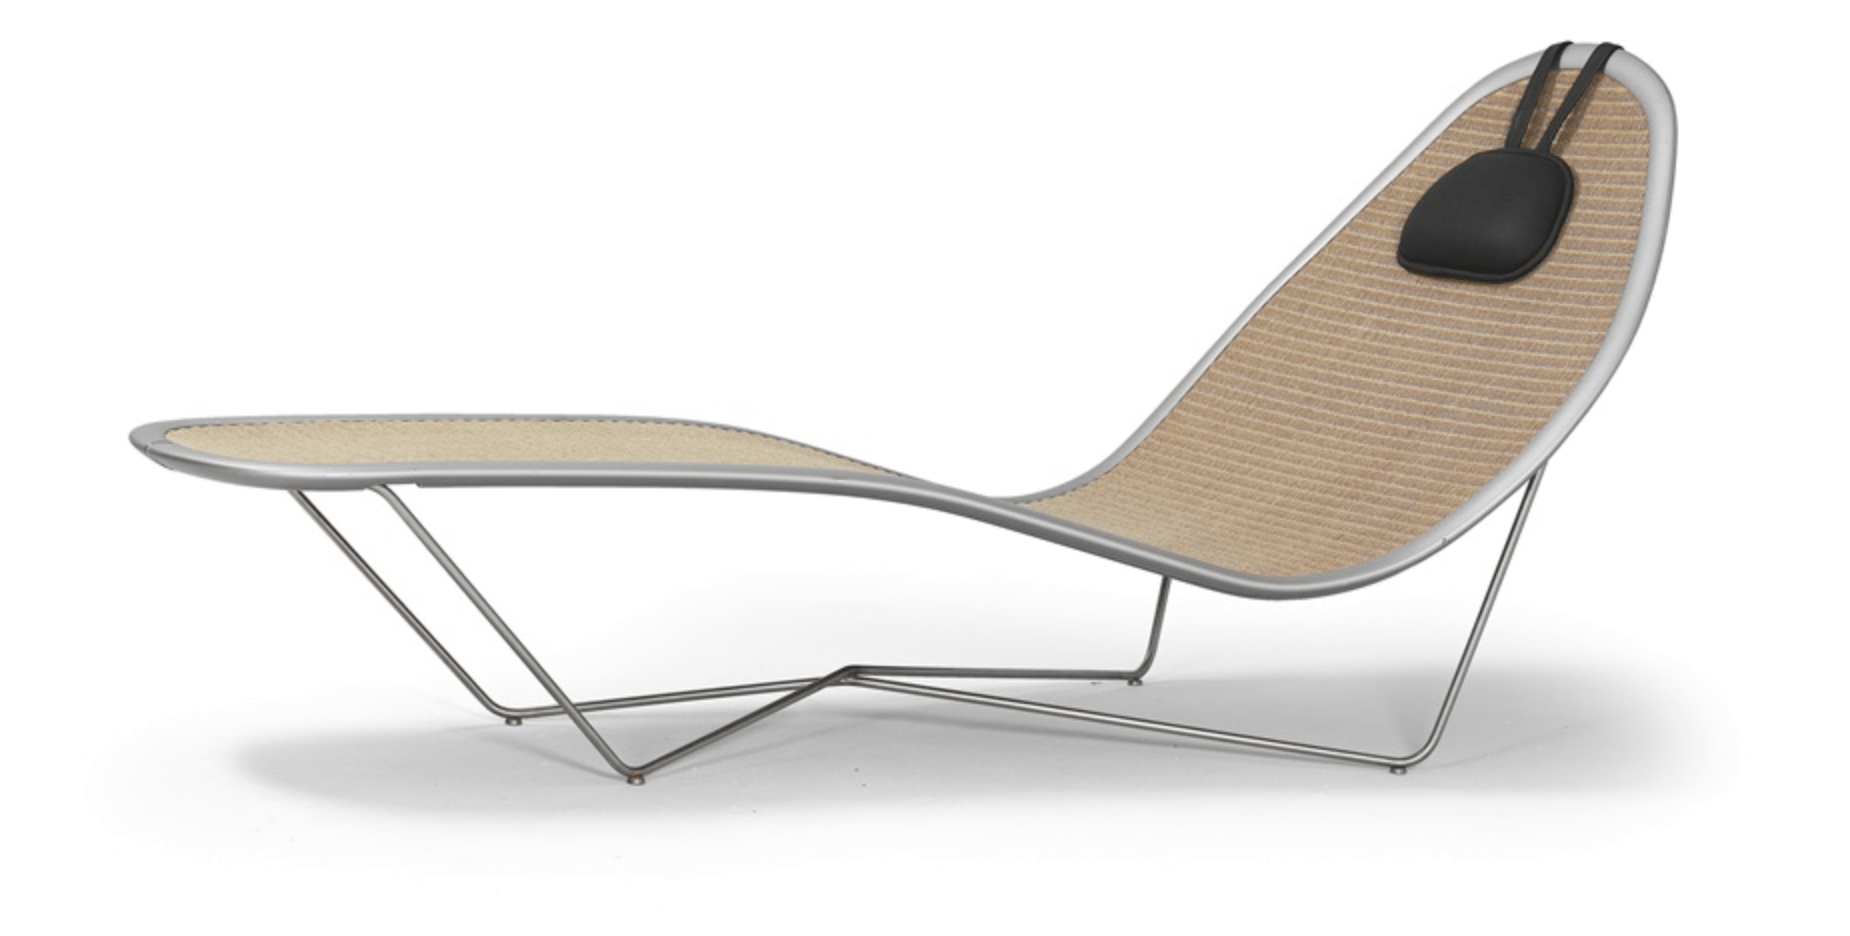 Chaise longue (collection for Lloyd Loom) 1988 by Ross Lovegrove